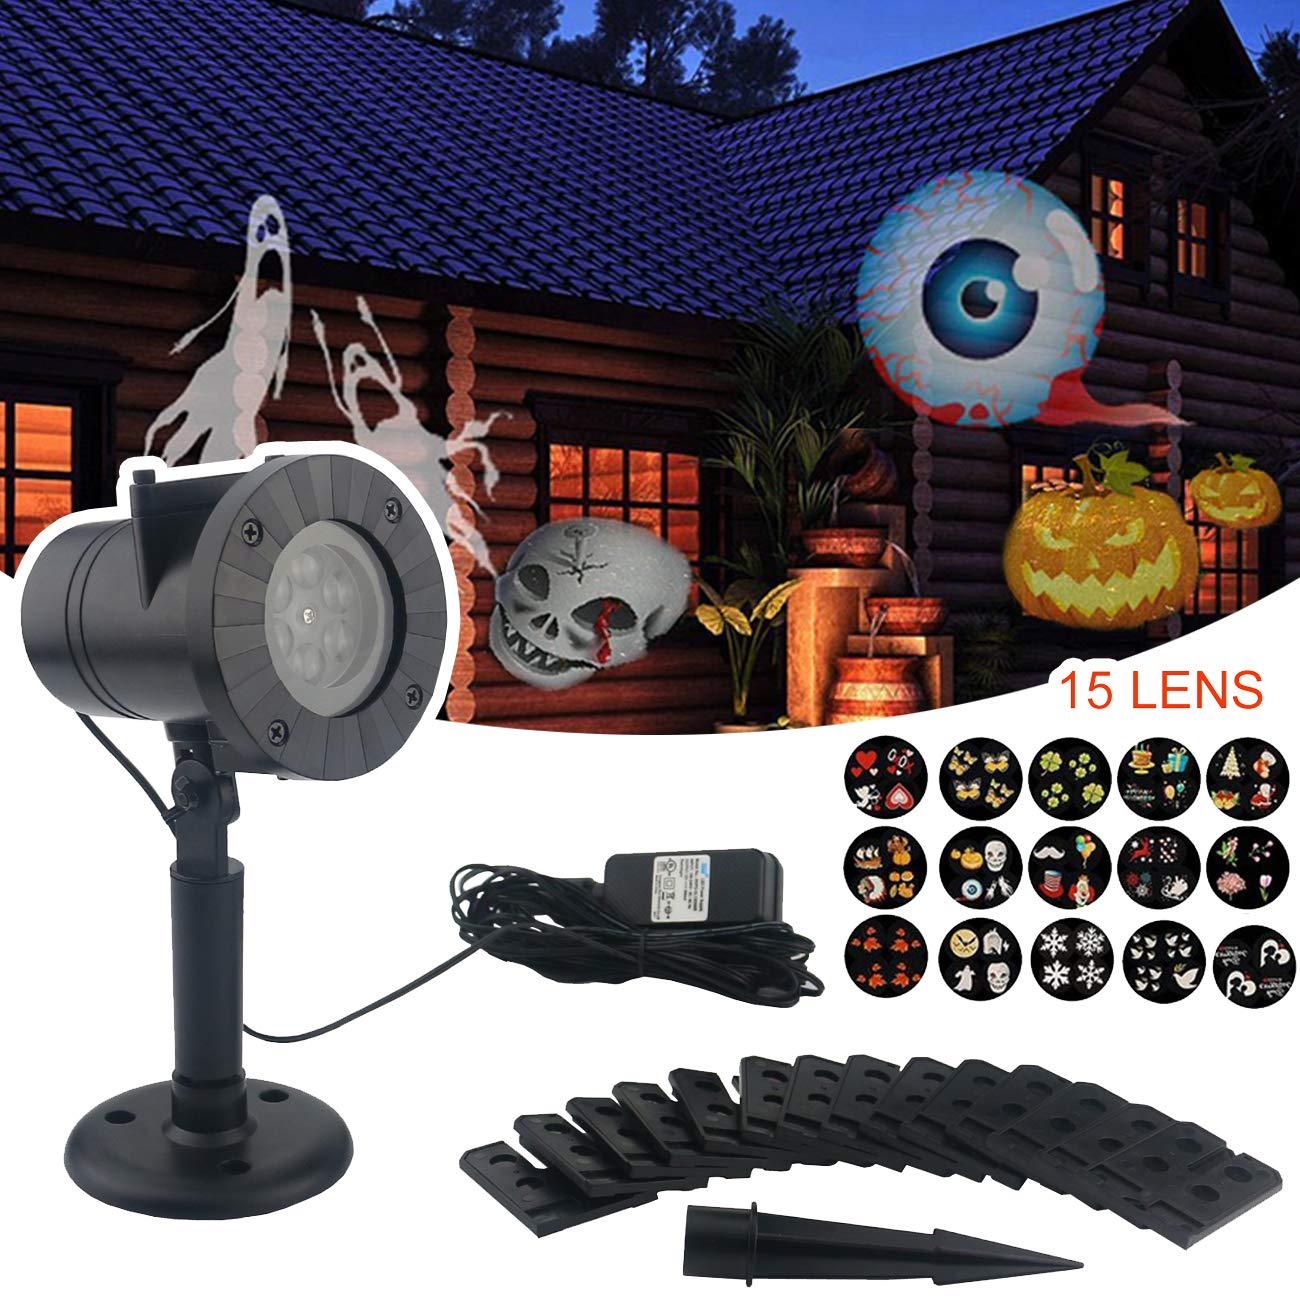 Sunnyglade Halloween Projector Lights with 15 Slides Outdoor and Indoor Landscape Motion LED Projection Lights with 16.4ft Power Cable for Decoration Lighting on Xmas Holiday Birthday Wedding Party